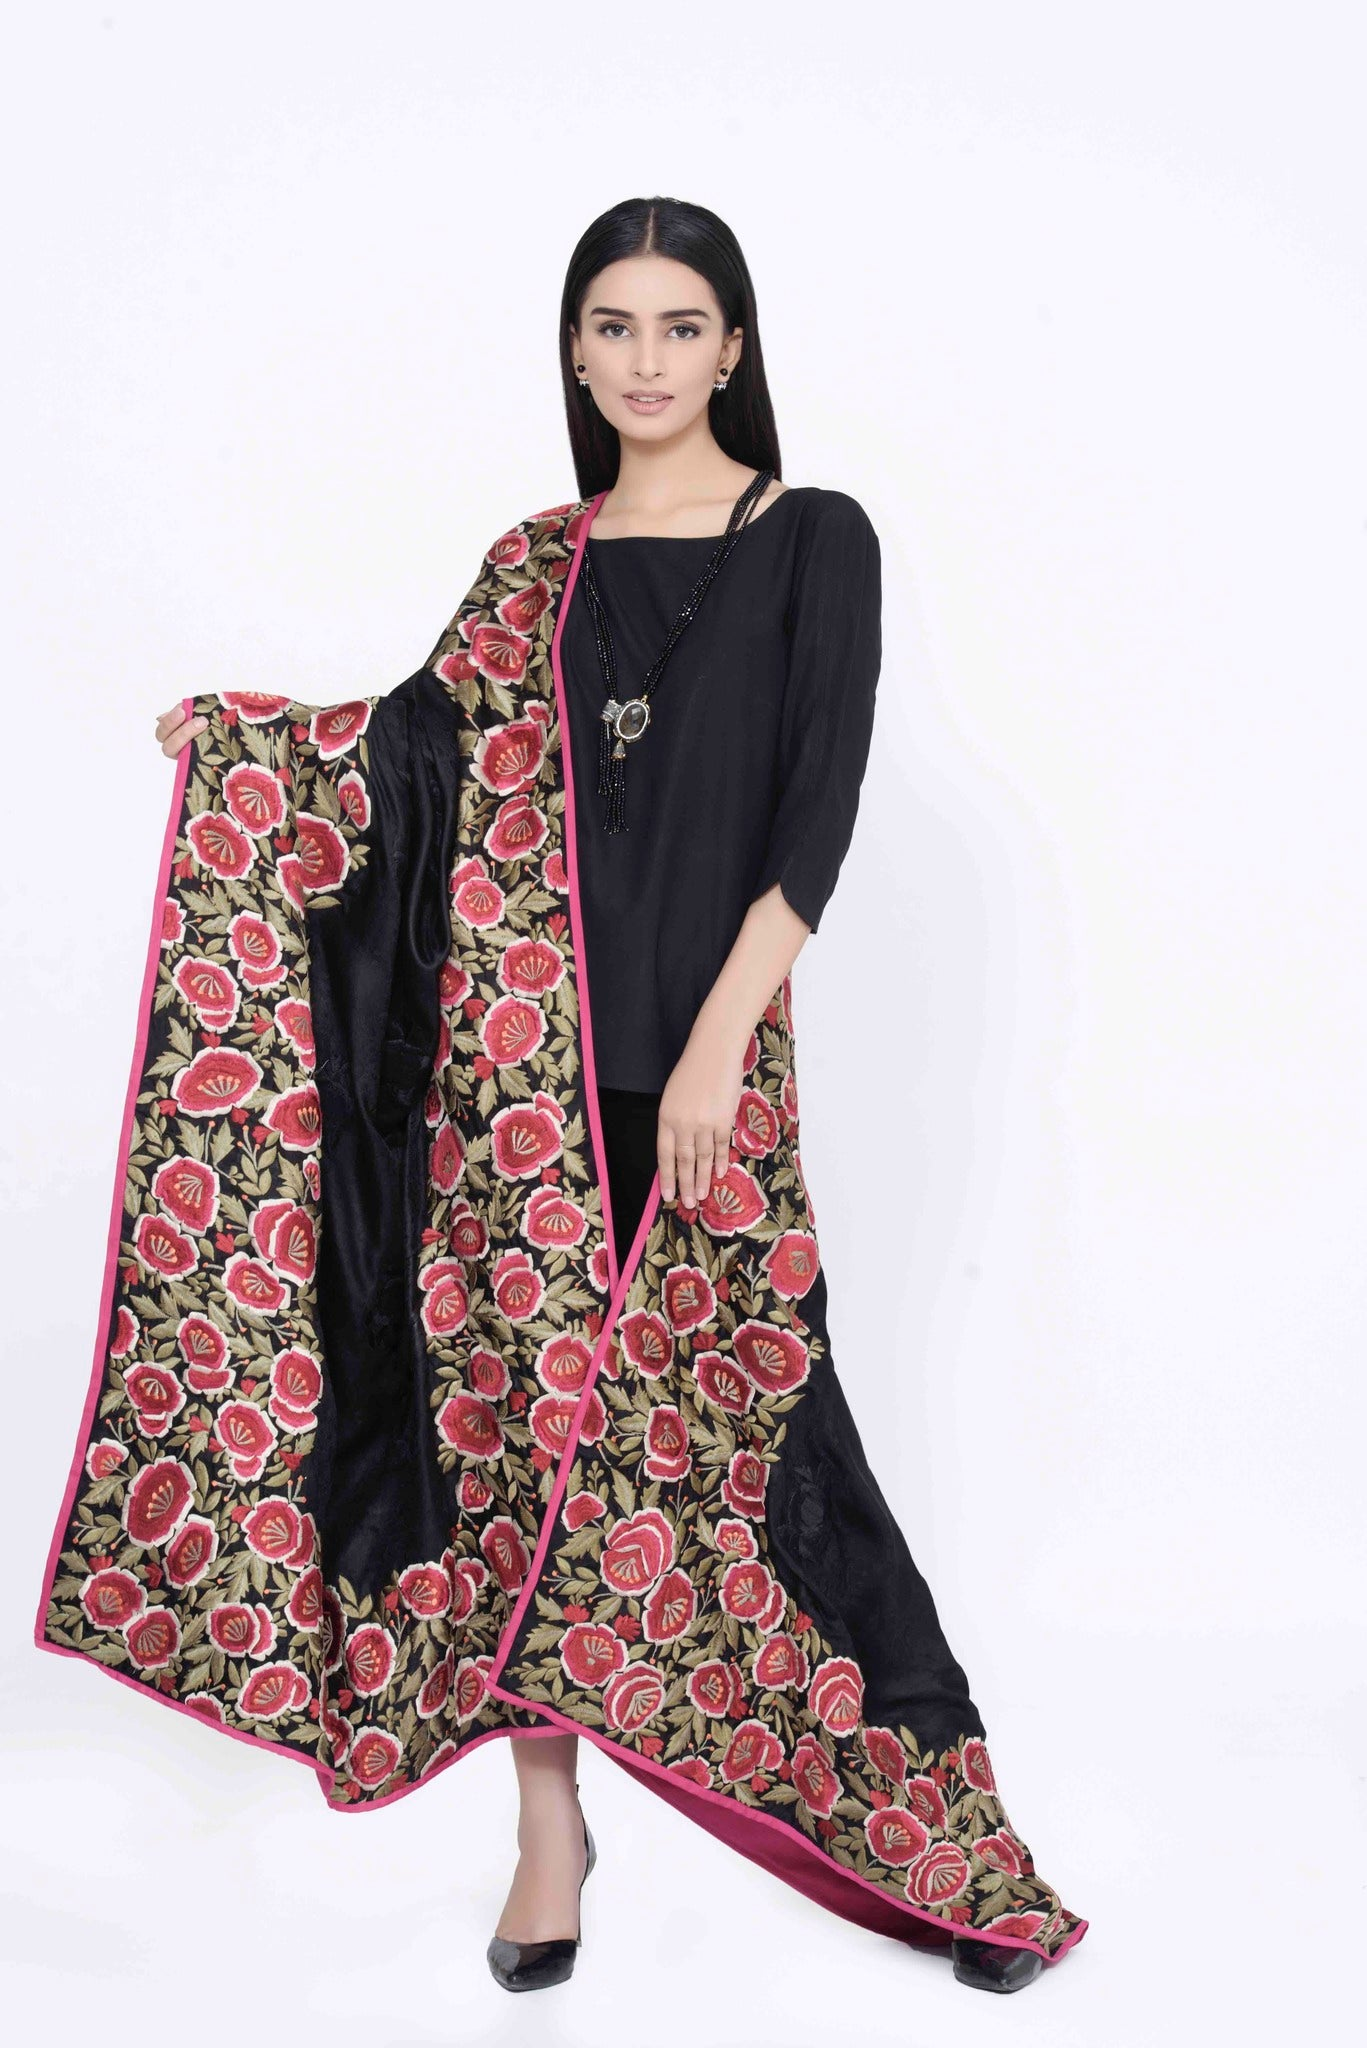 Black Shawl with Floral Border